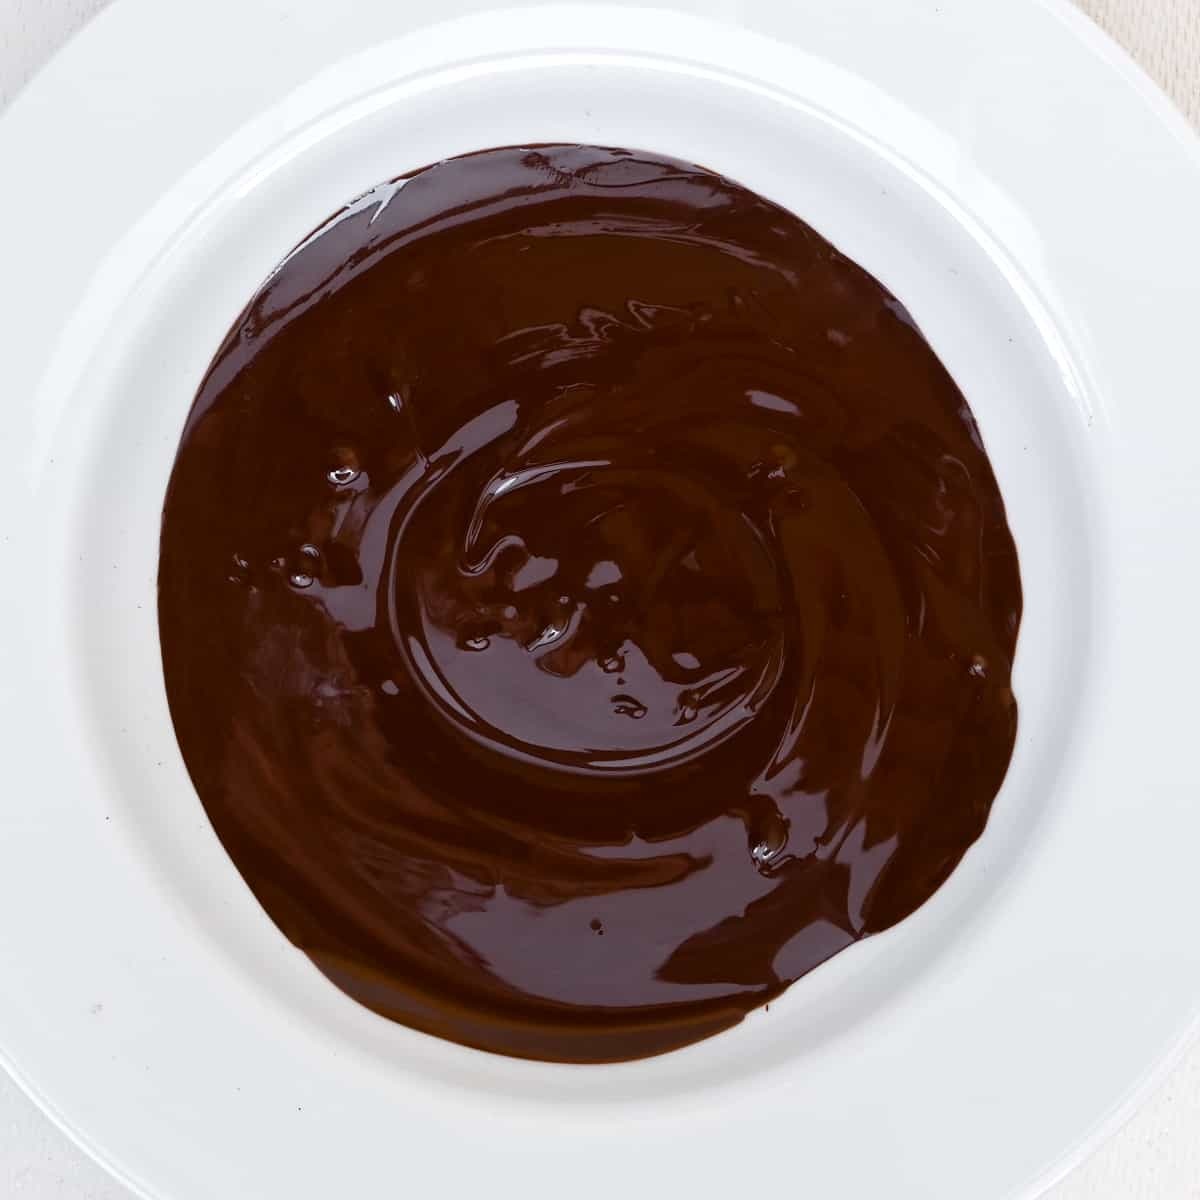 Melted dark chocolate in a bowl.